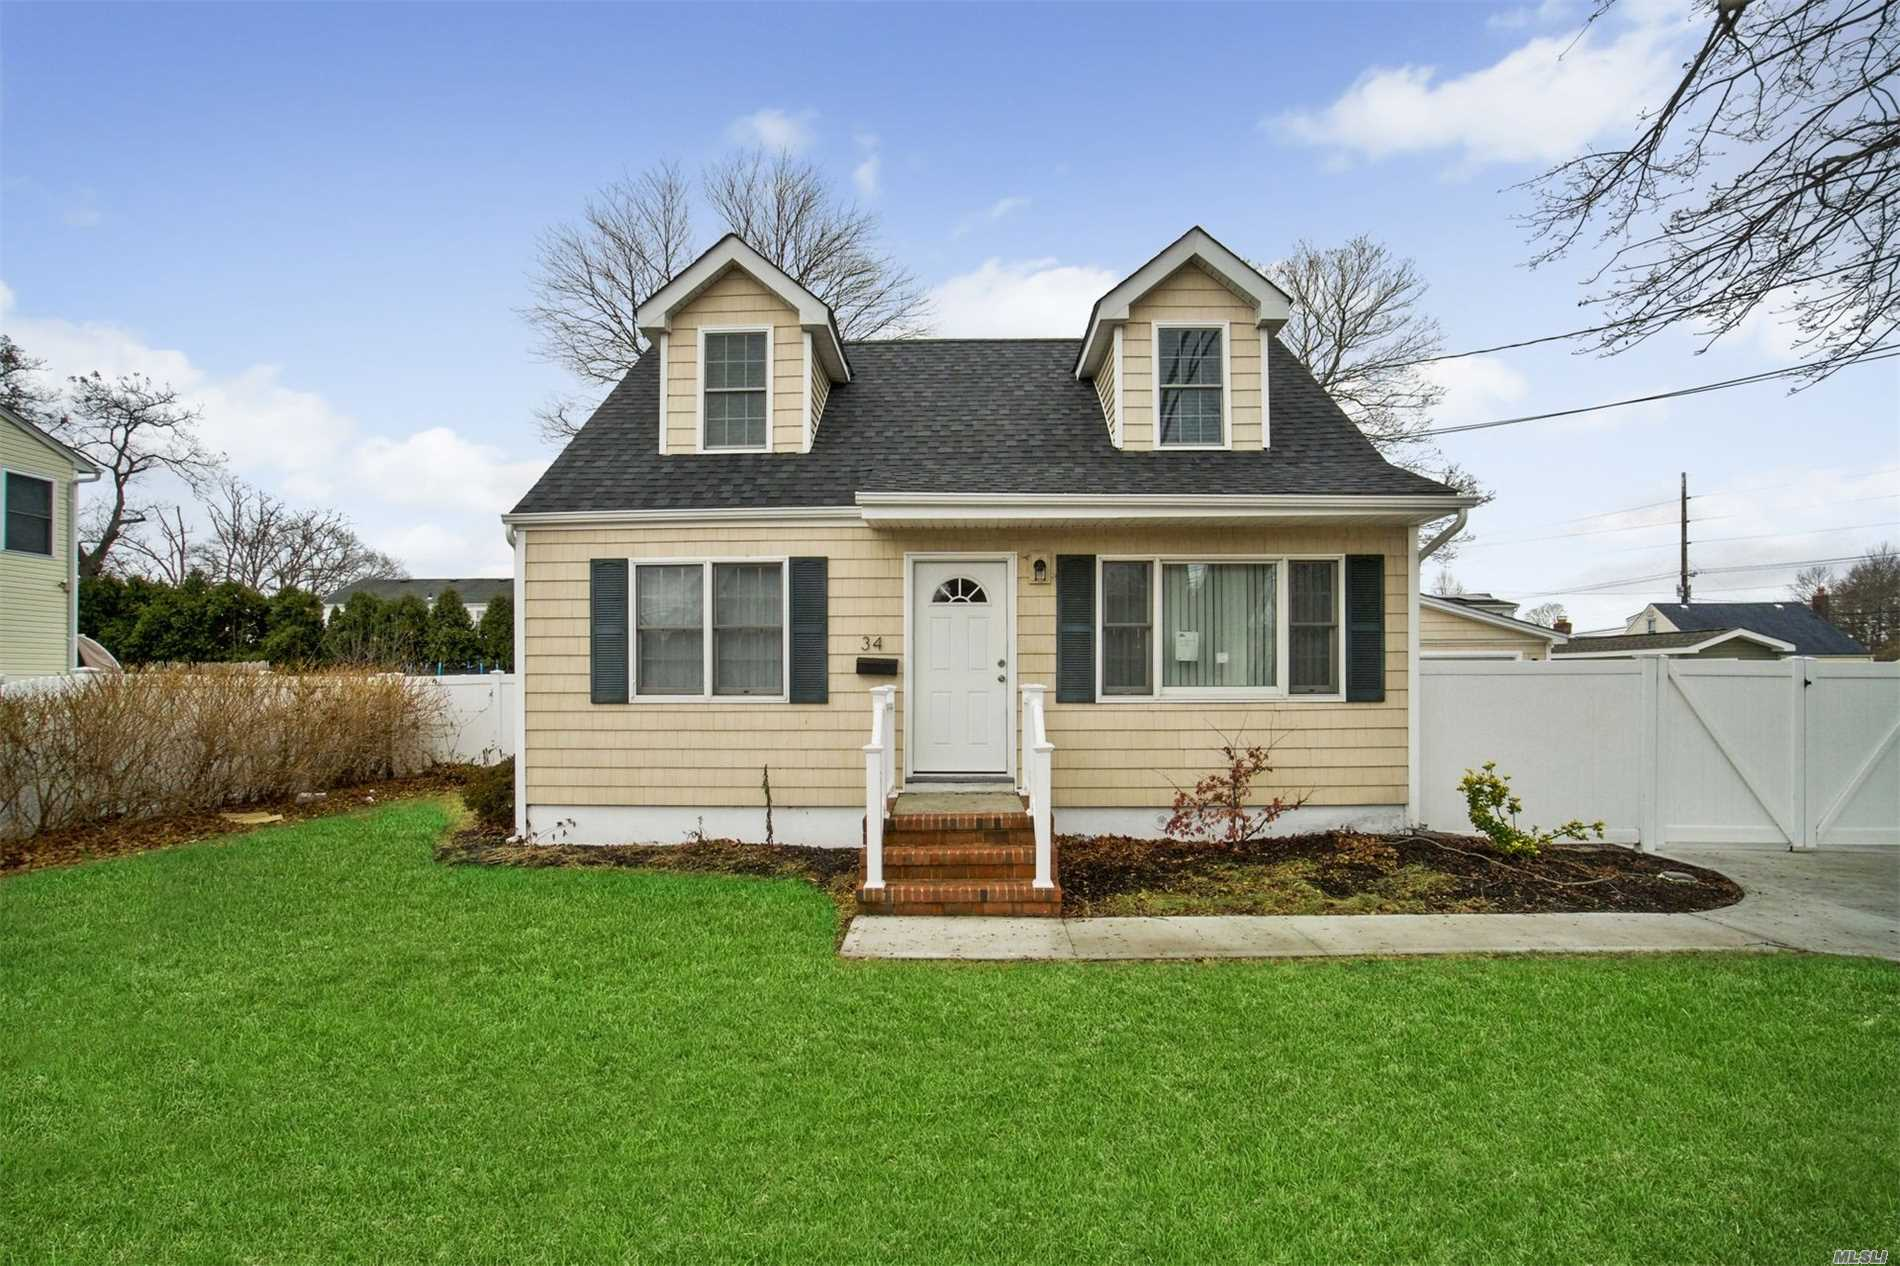 Move Right Into This Charming Cape Freshly Updated W/ New Carpets, Wood Floors, Updated Kitchen & More! Ss Appliances & A Ton Of Storage In The Basement & Huge 2 Car Garage! Set Your Lawn Chair Out On The Rear Deck & Enjoy Suffolk County Living! Come & See This Gem For Yourself!